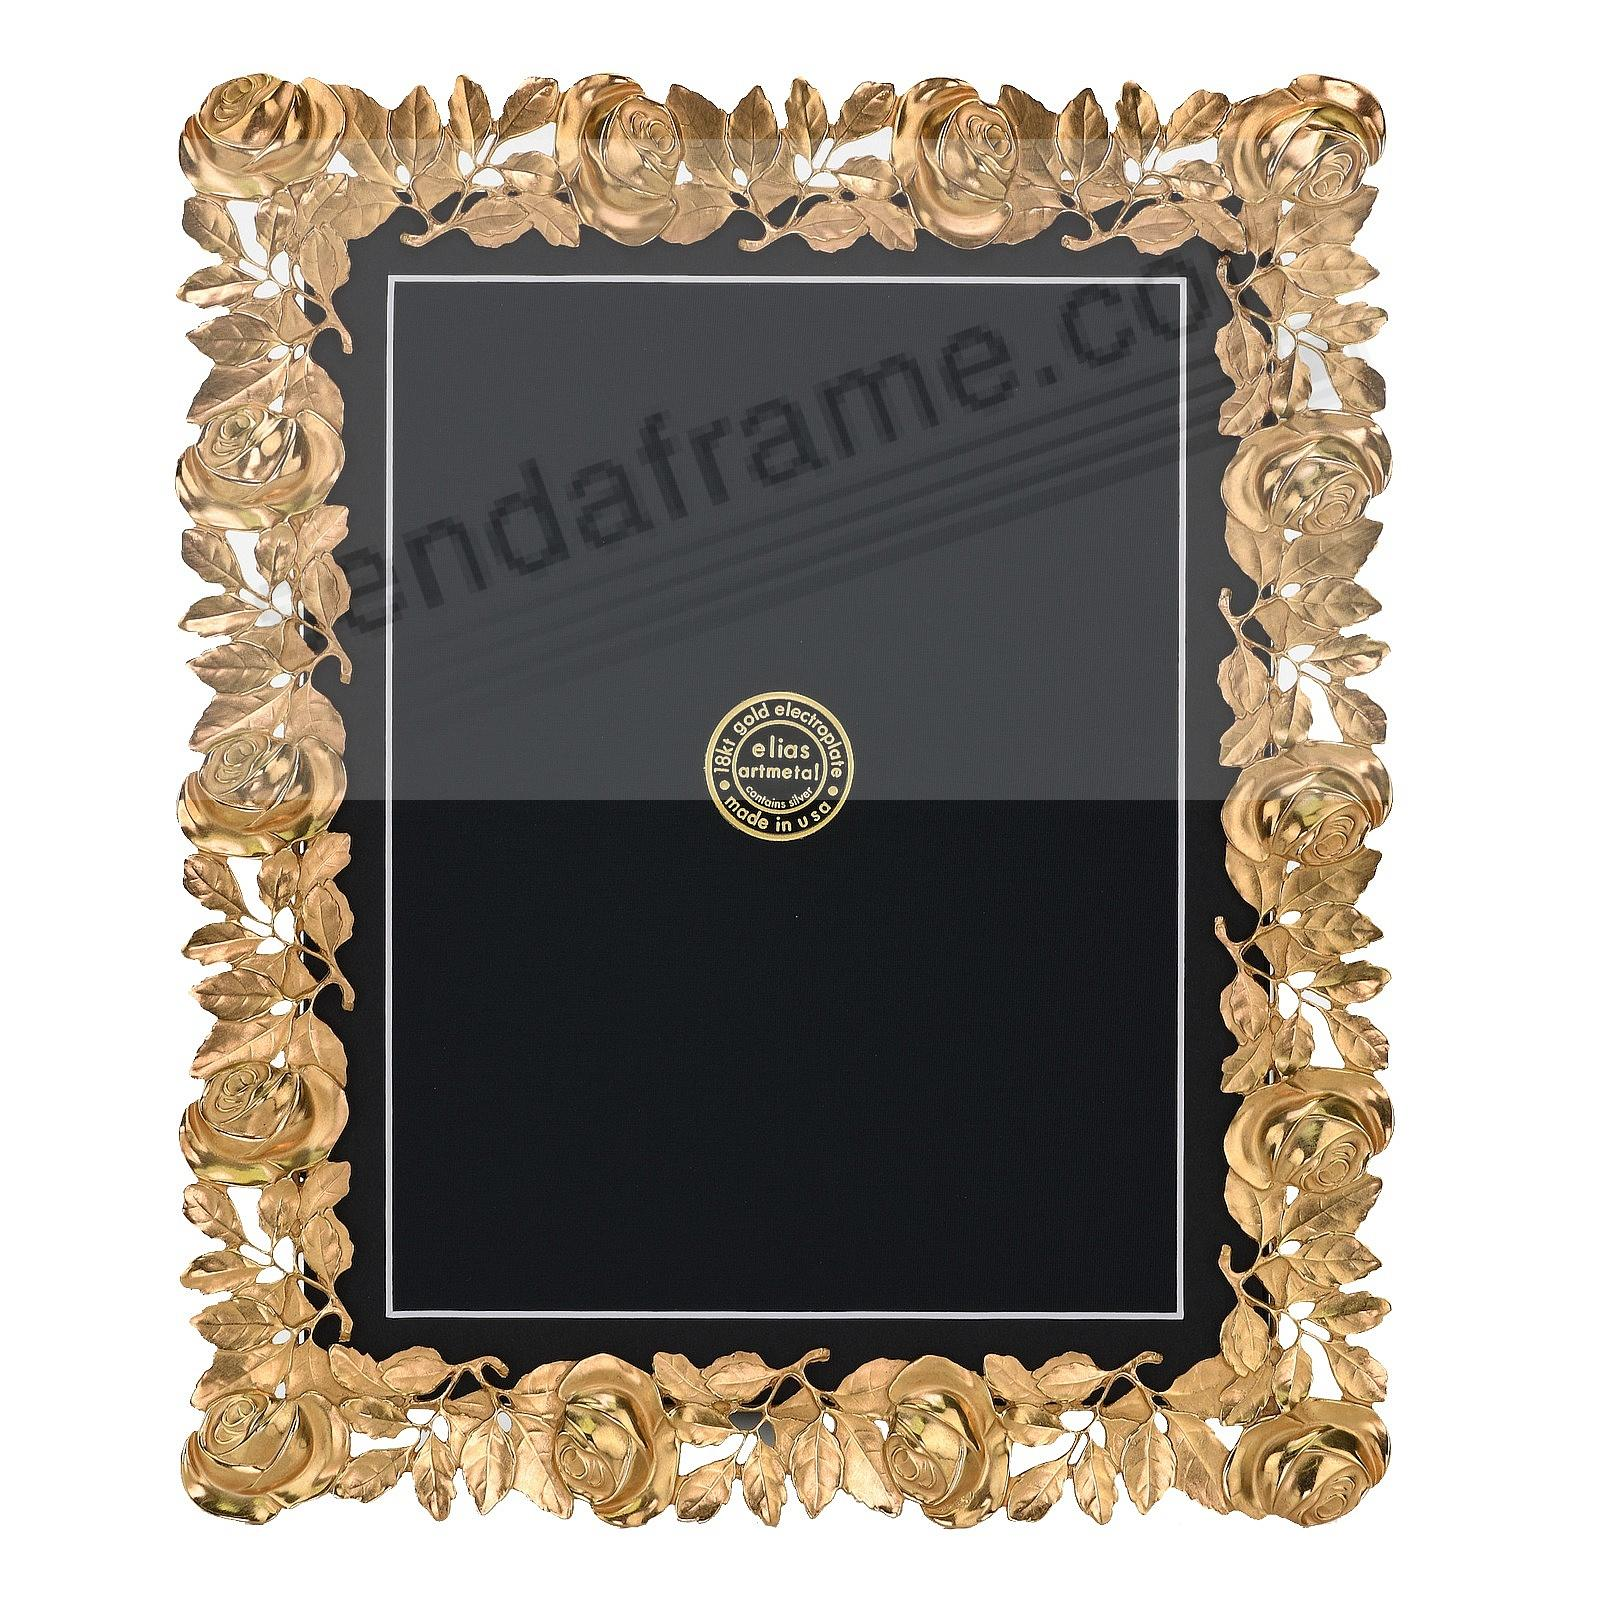 The ROSES FRAME 18kt Gold Vermeil 8x10 / 7x9 by Elias Artmetal®